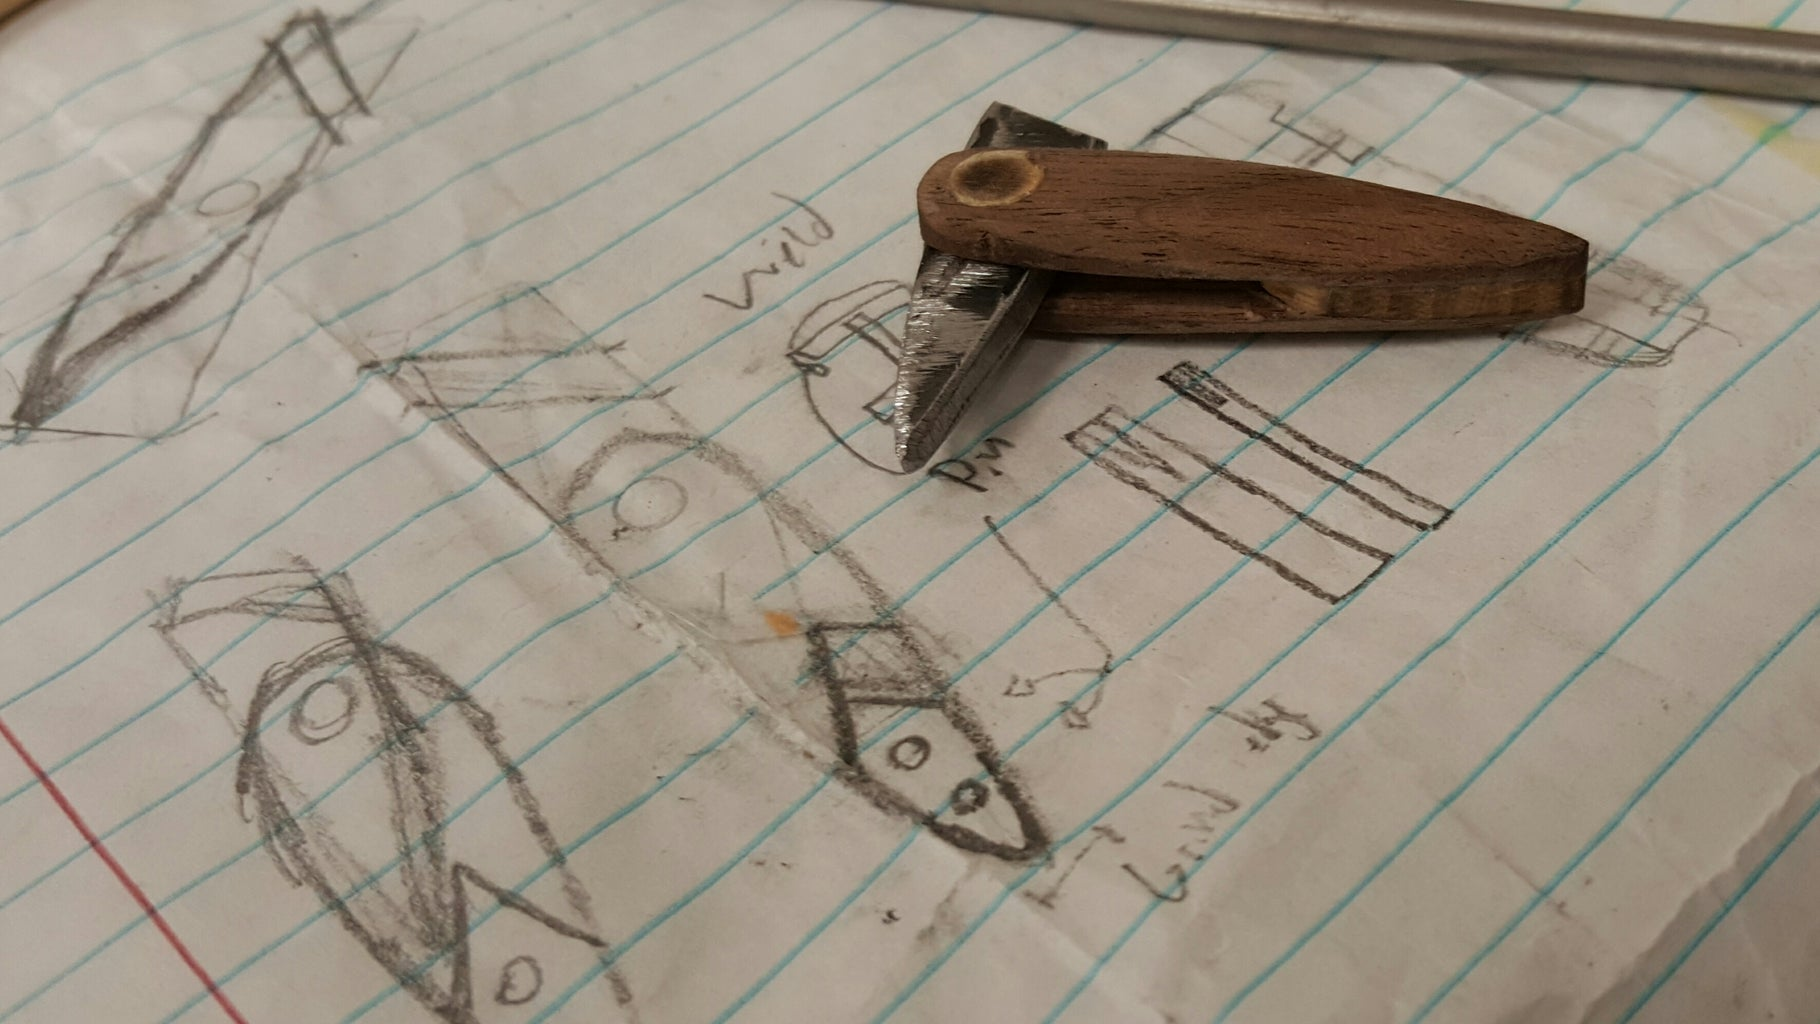 Designing and Refining the Prototype